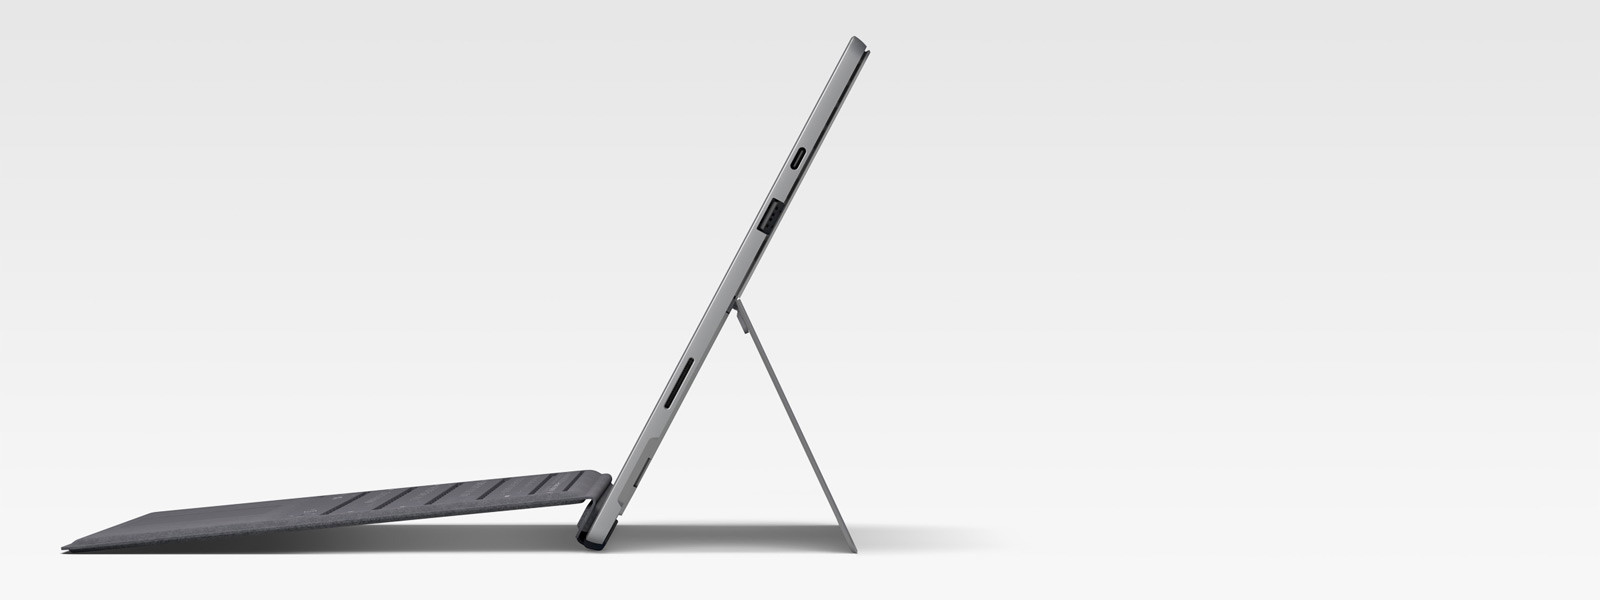 Surface Pro 7 In Laptop Mode with Surface Pro Signature Type Cover as seen from side view